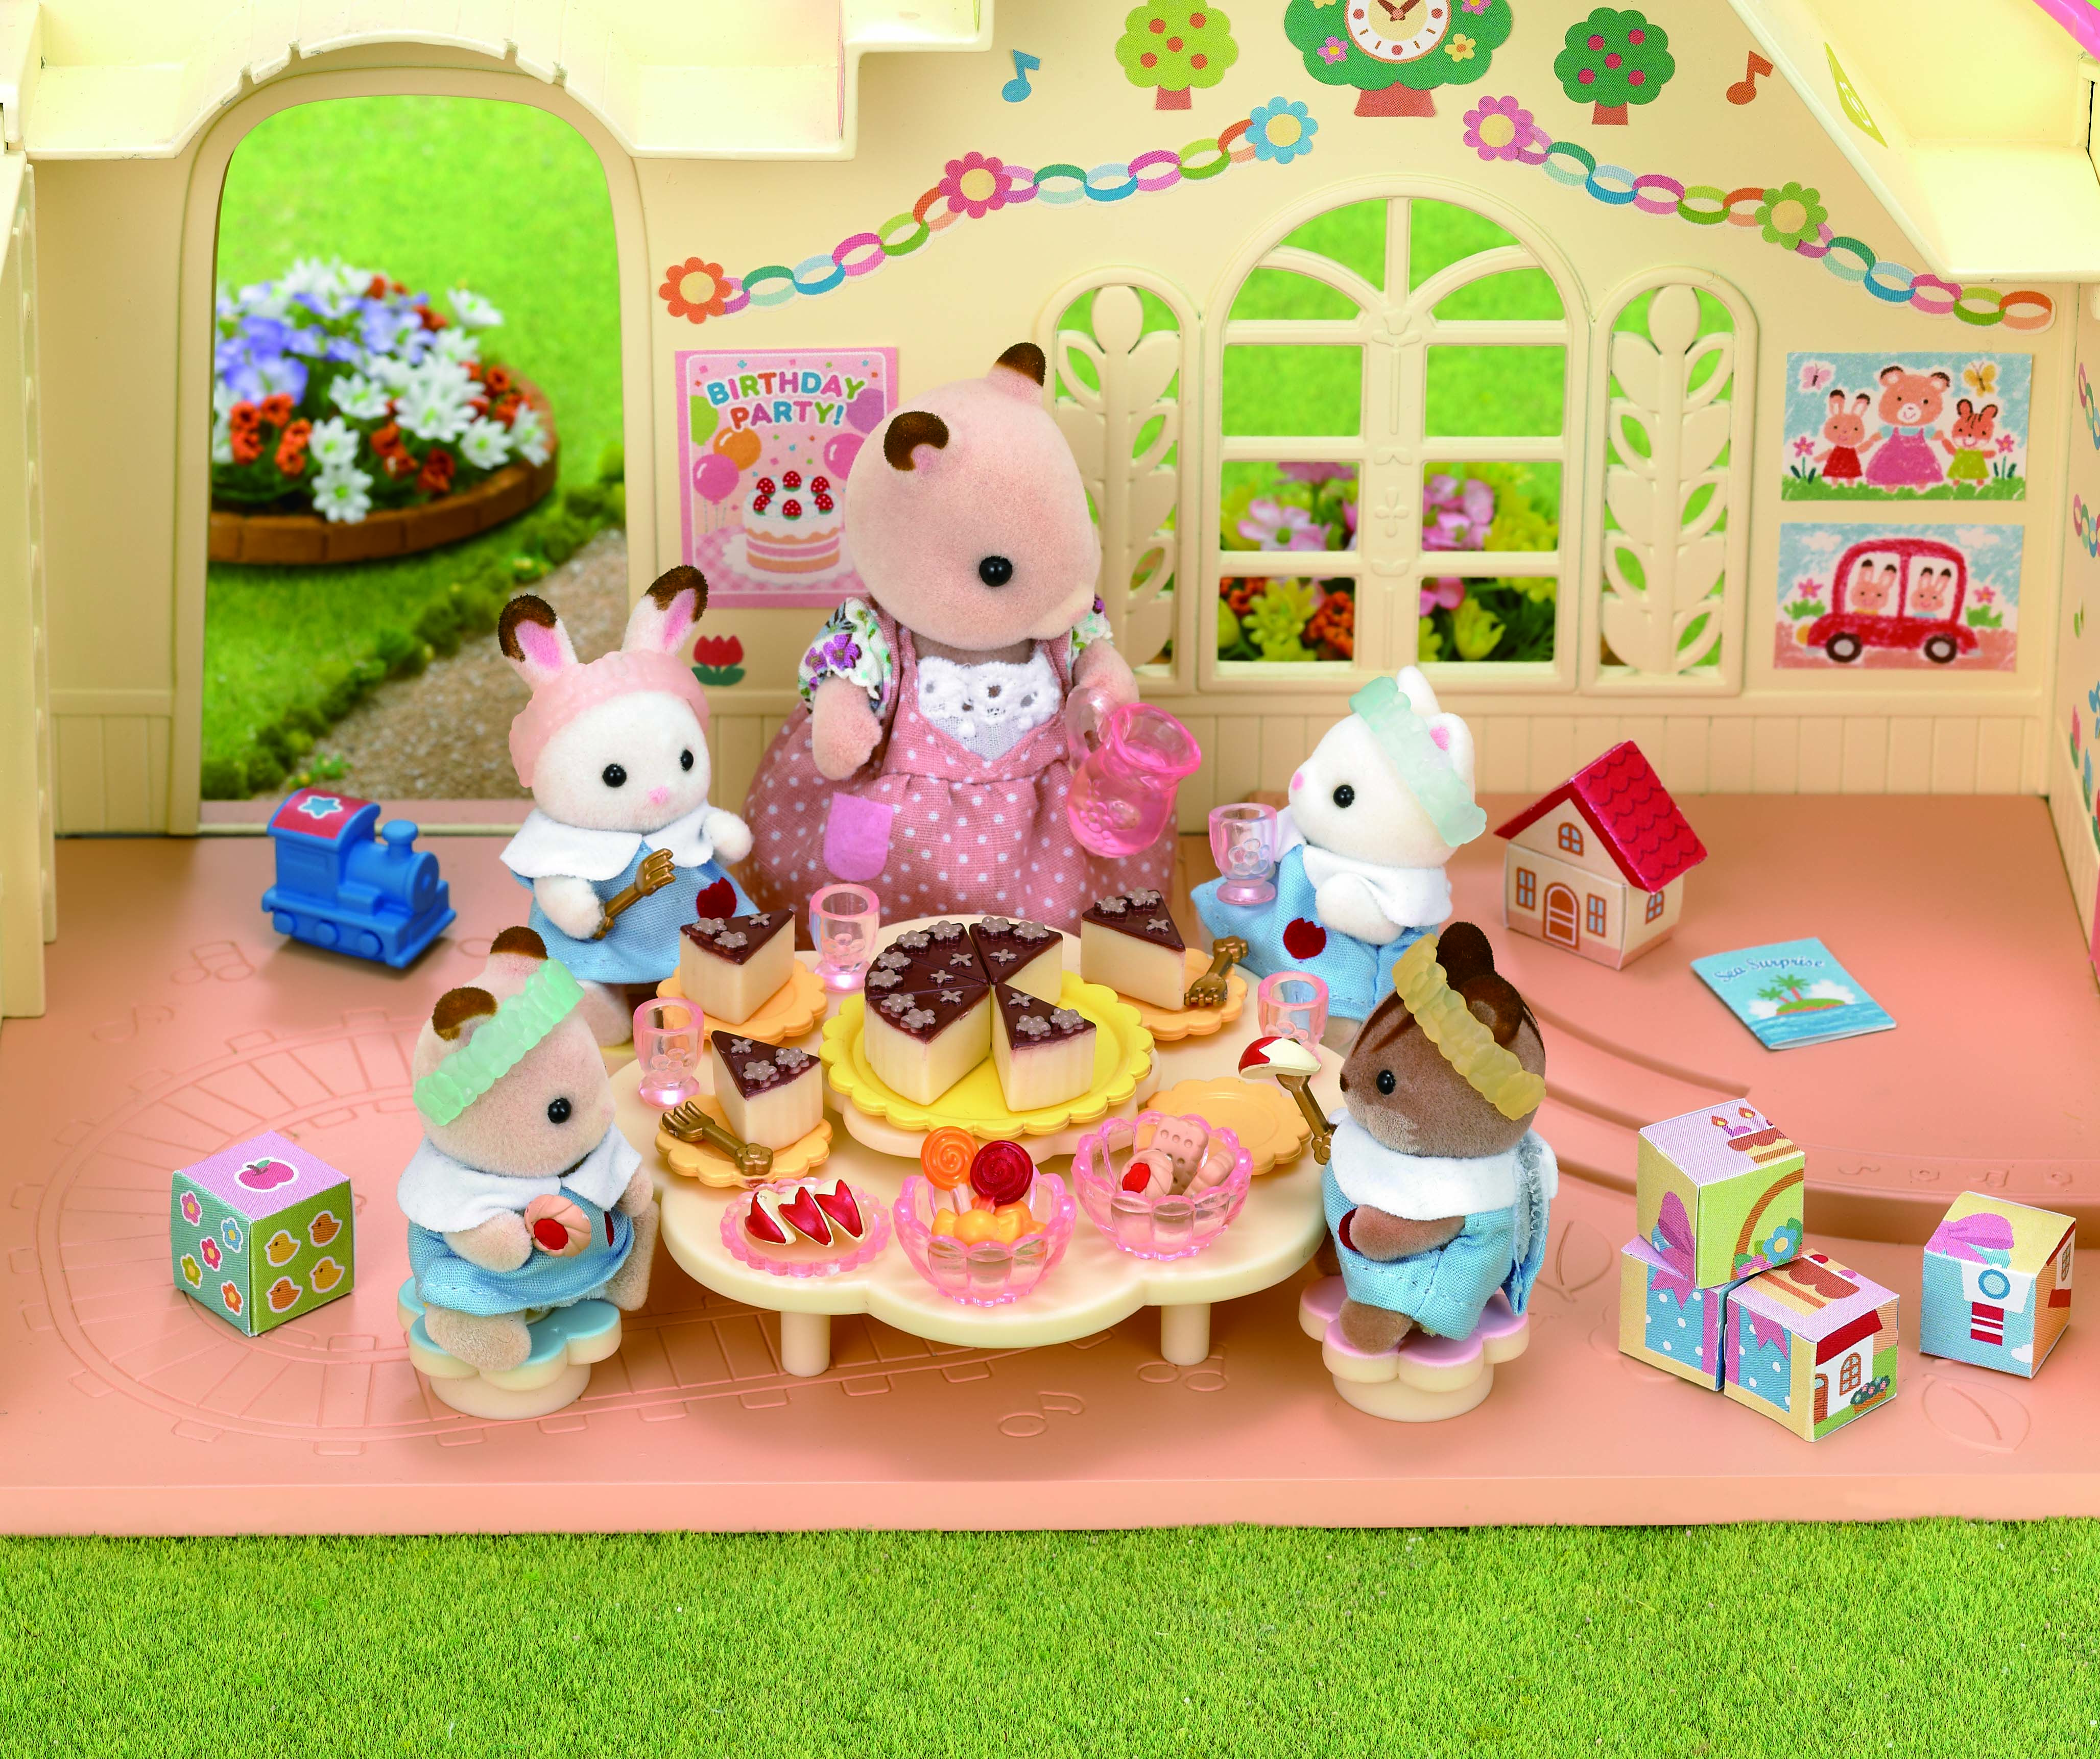 Sylvanian Families Calico Critters Nursery Party Set